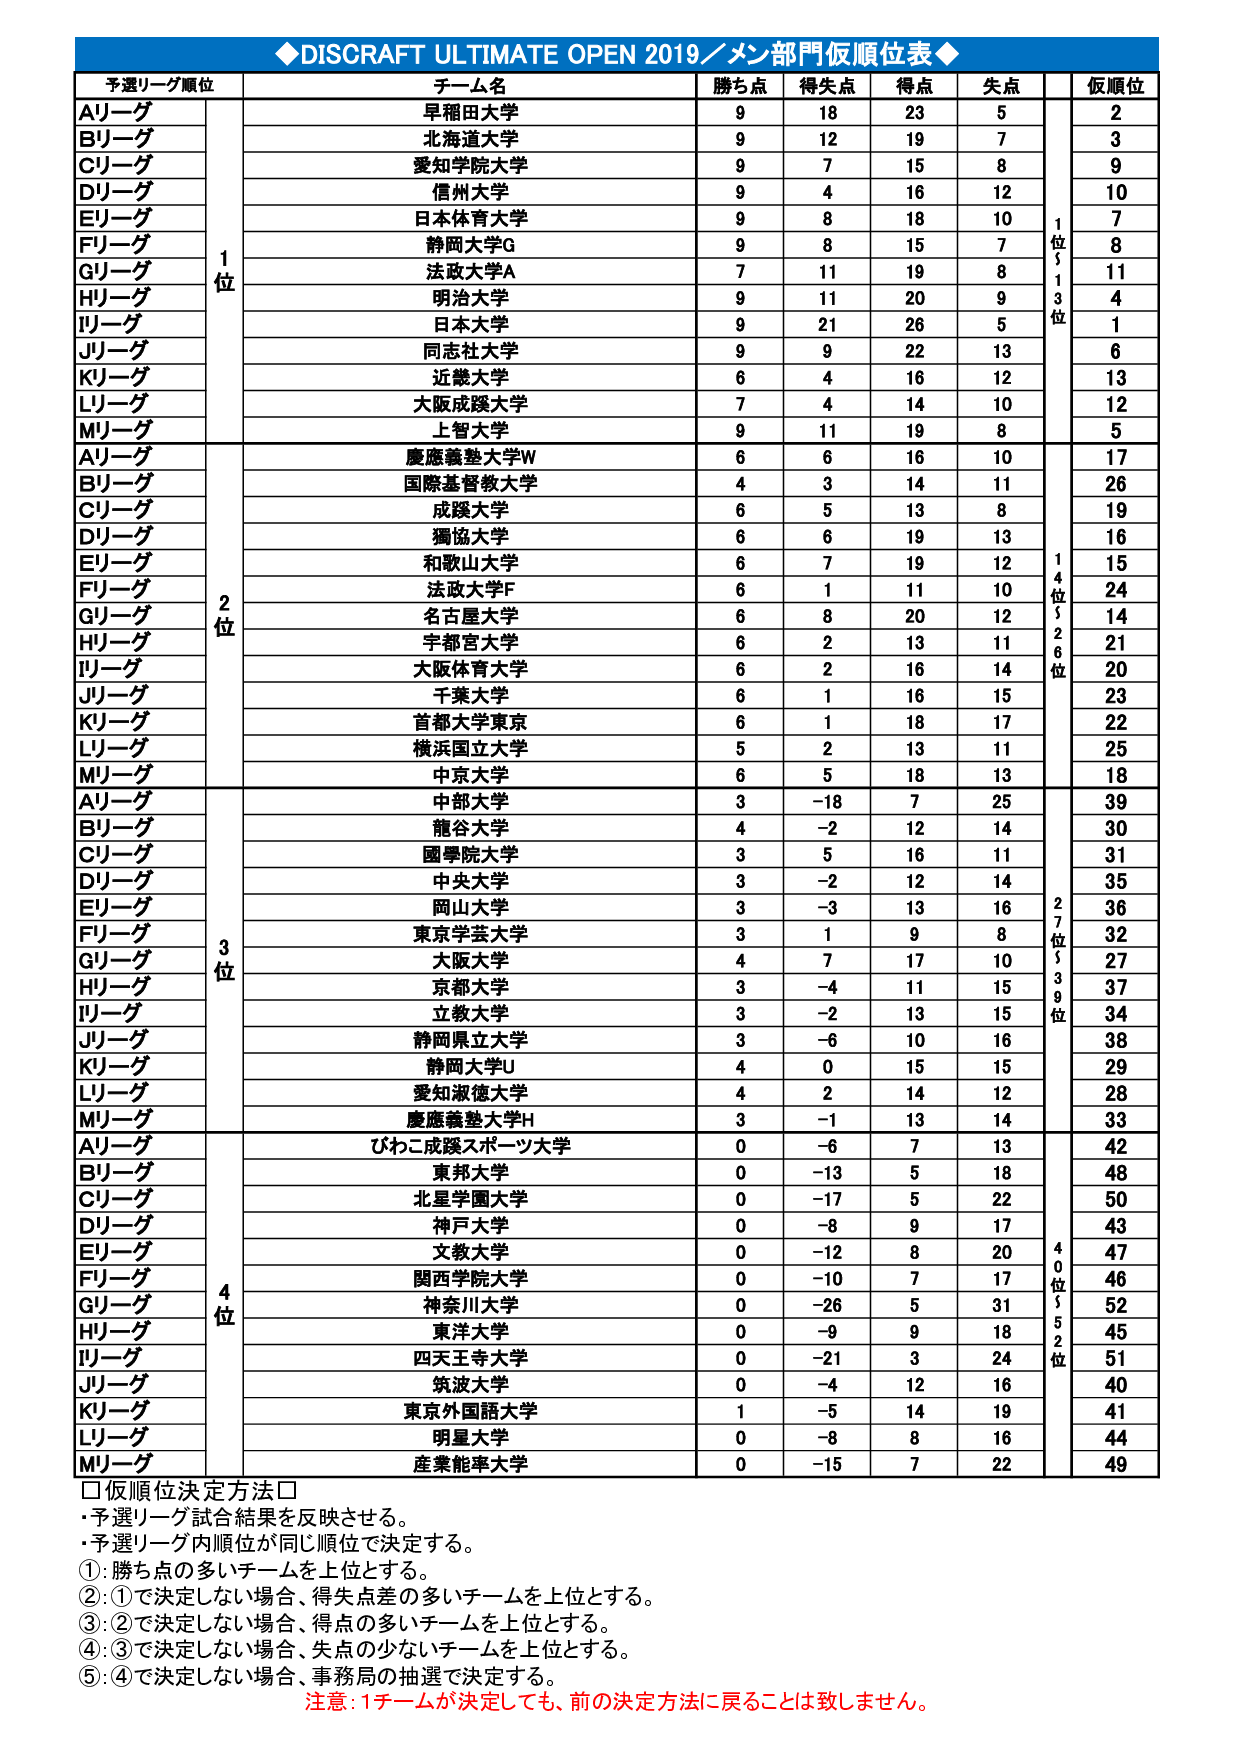 DISCRAFT ULTIMATE OPEN2019 最終結果